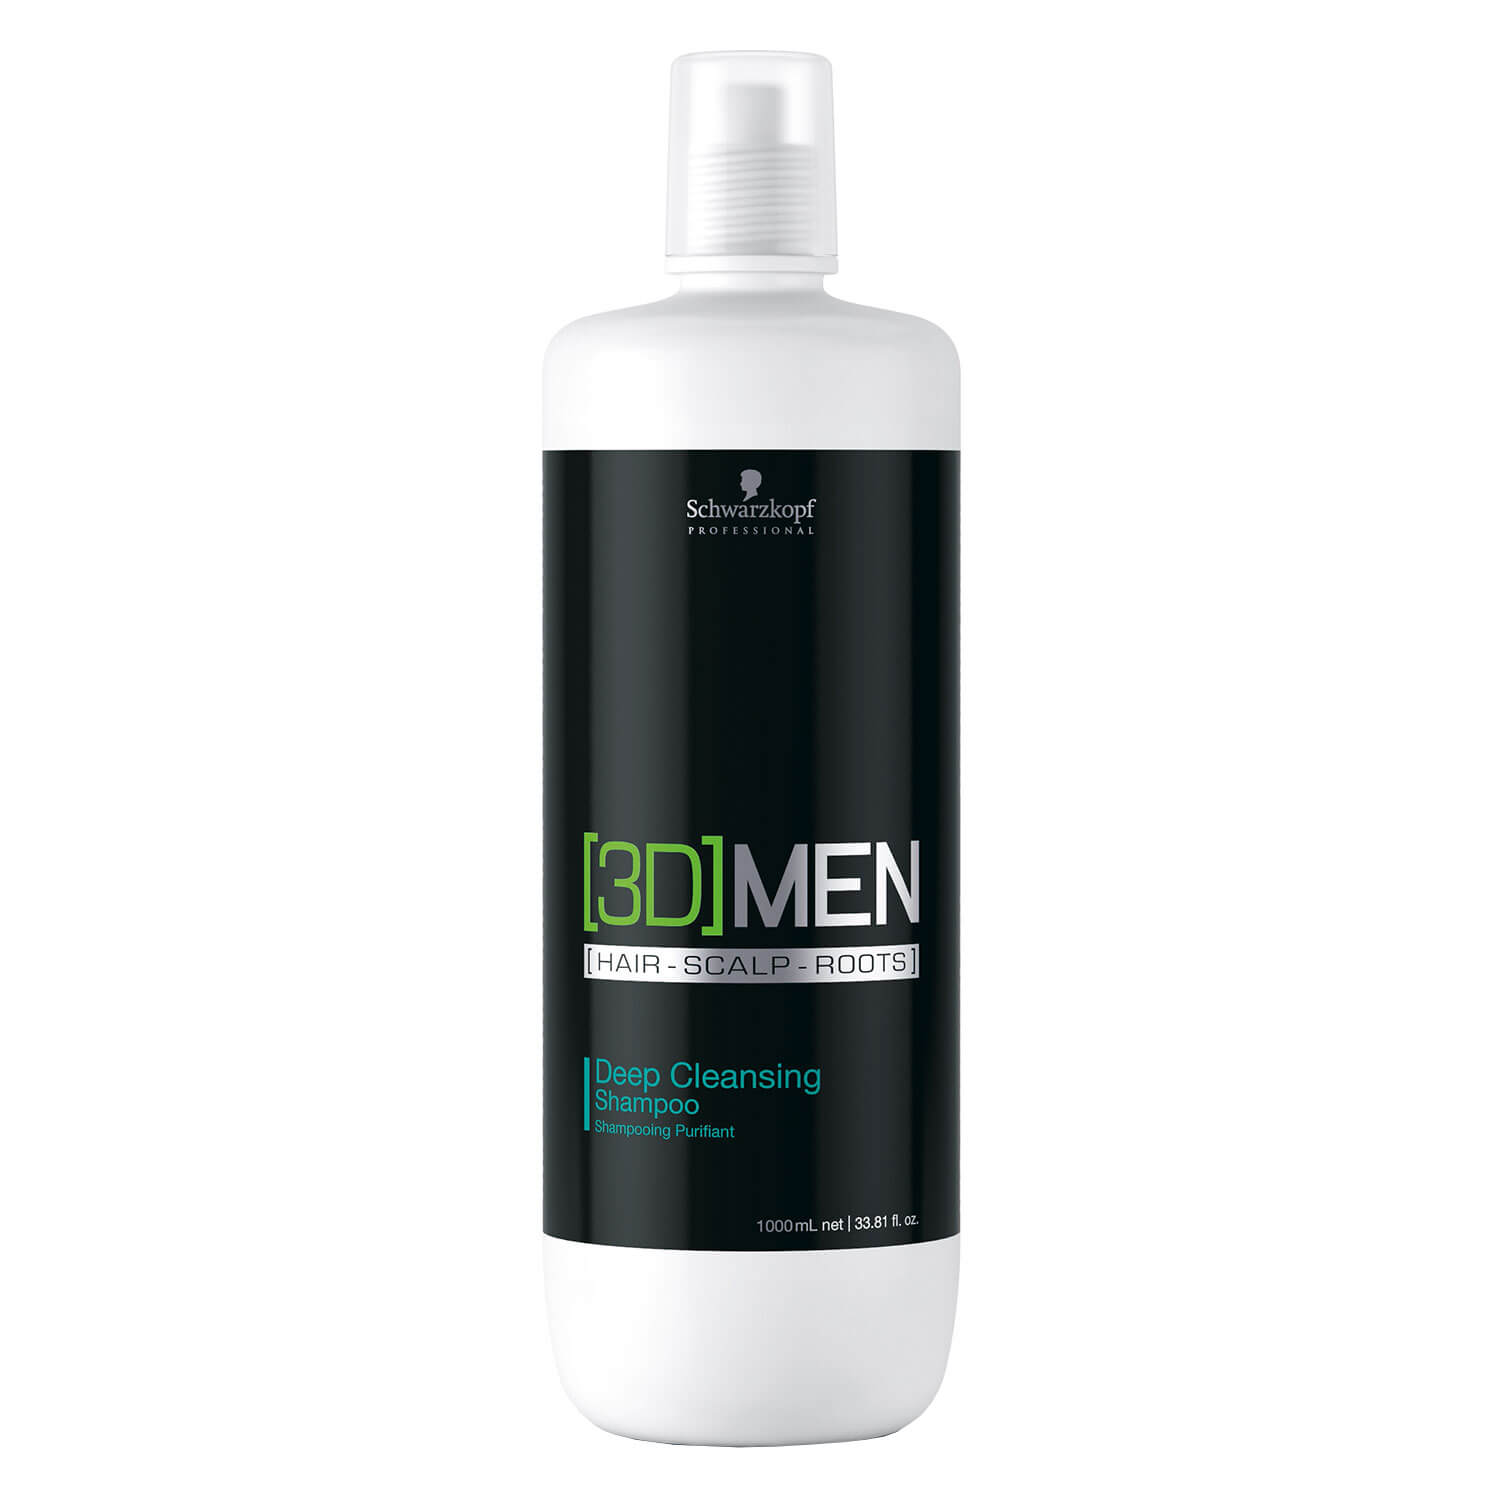 [3D]MEN - Deep Cleansing Shampoo